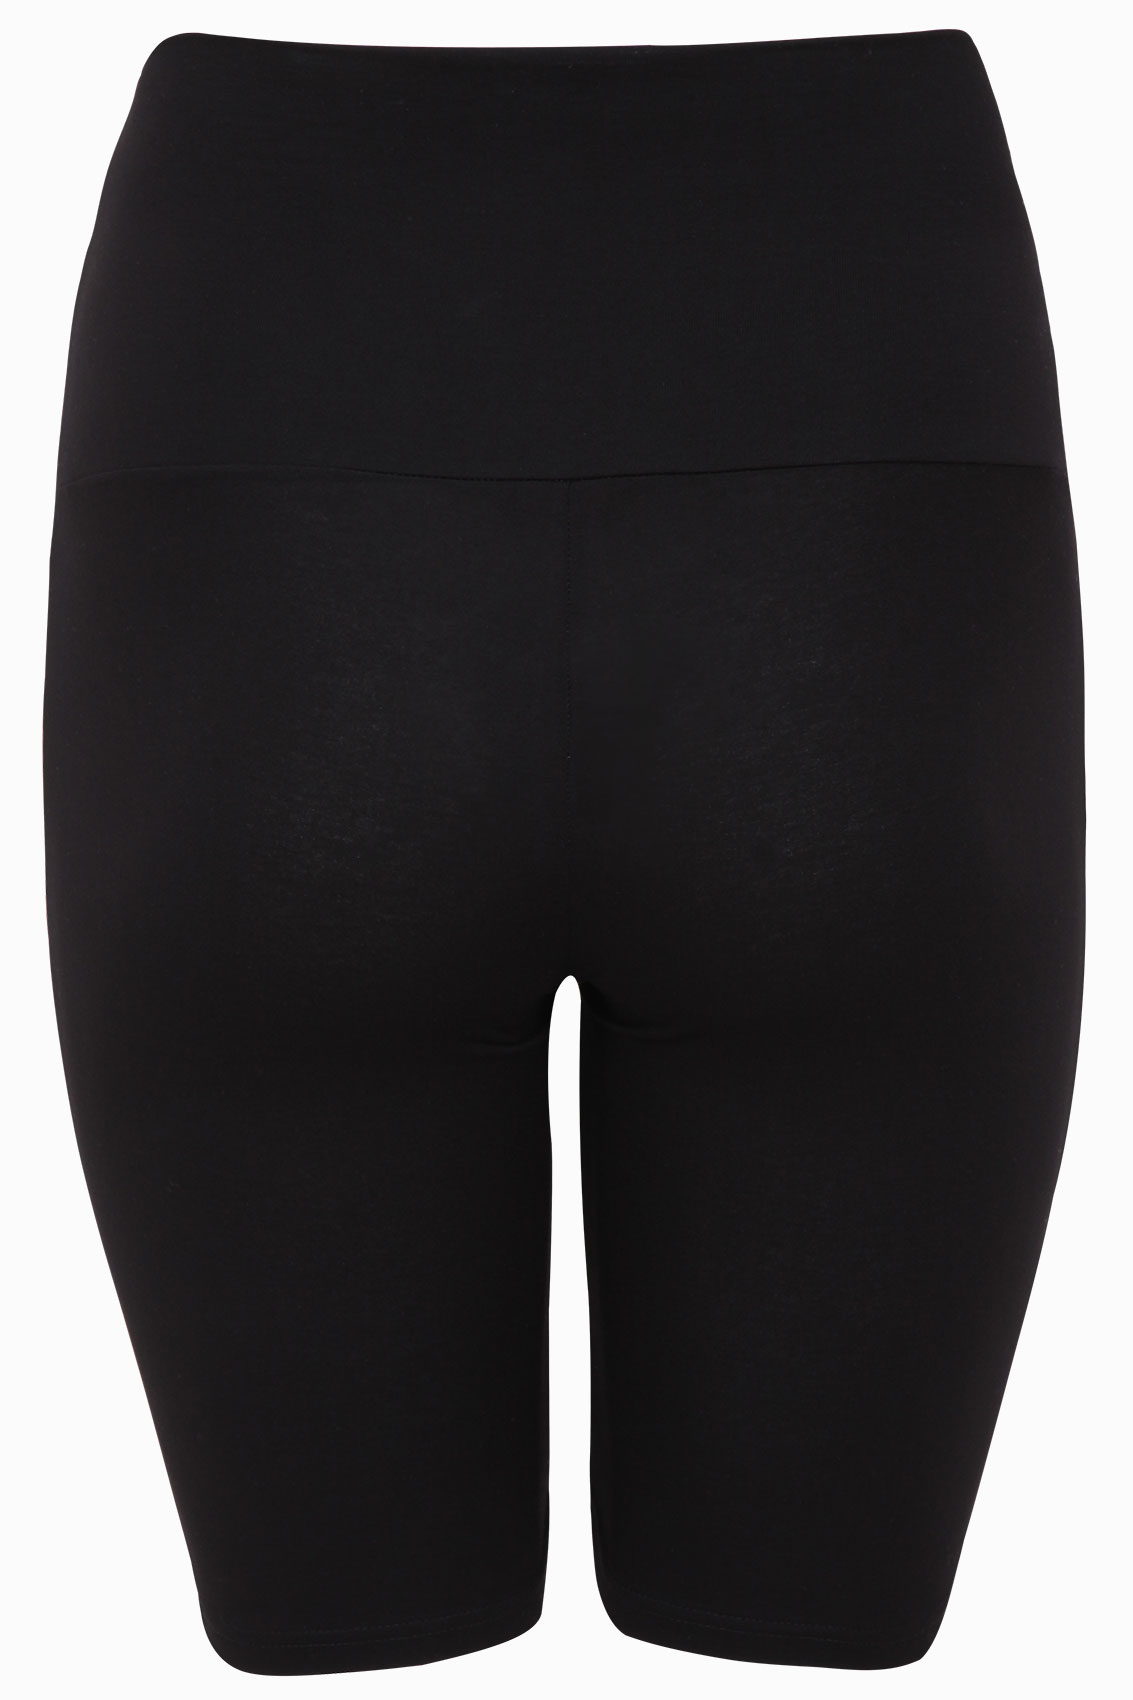 Black Tummy Control Soft Touch Legging Shorts, Plus Size -6538